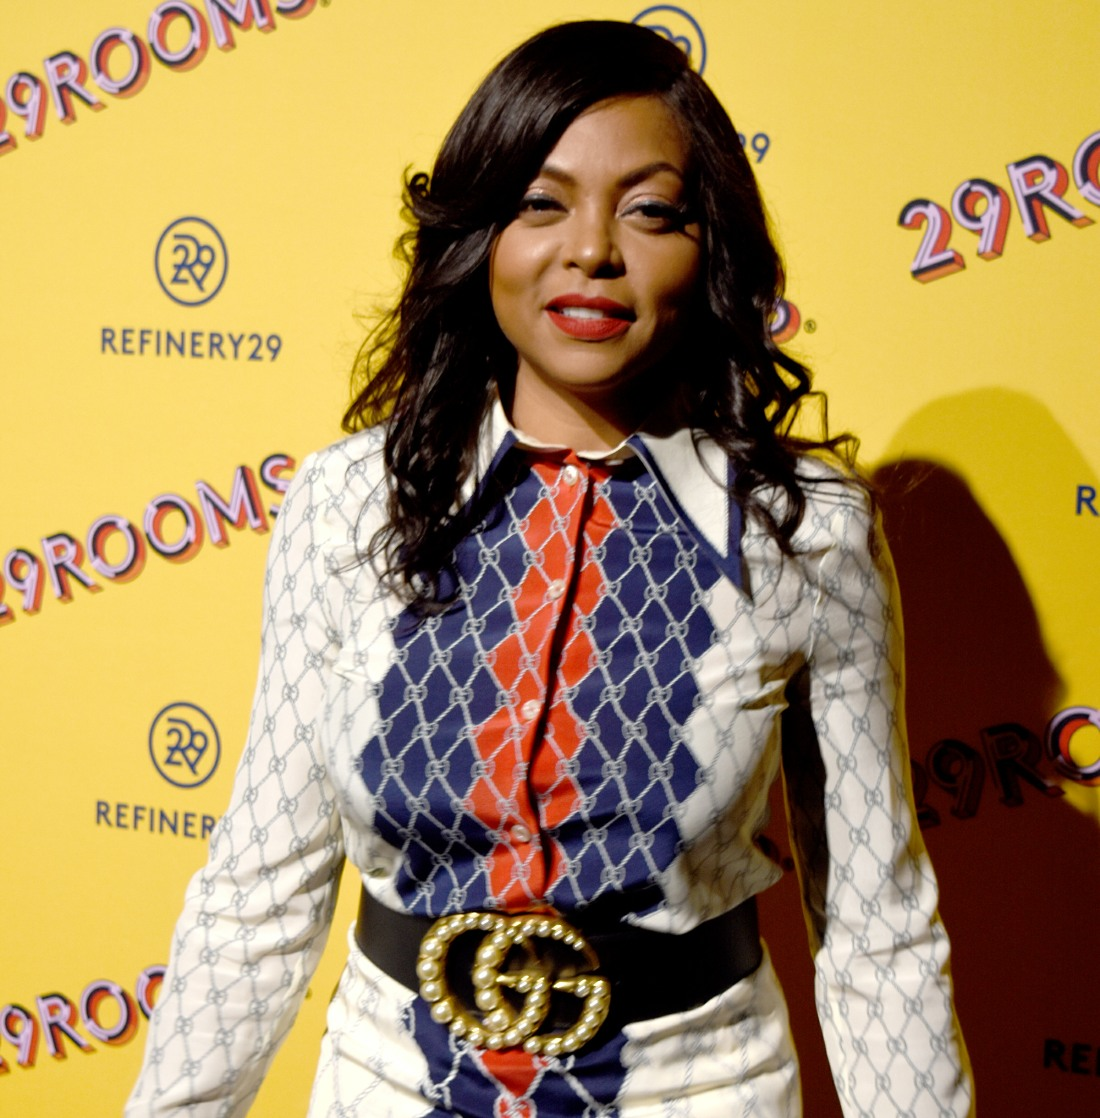 Refinery29's 29rooms Red Carpet Arrivals in Chicago